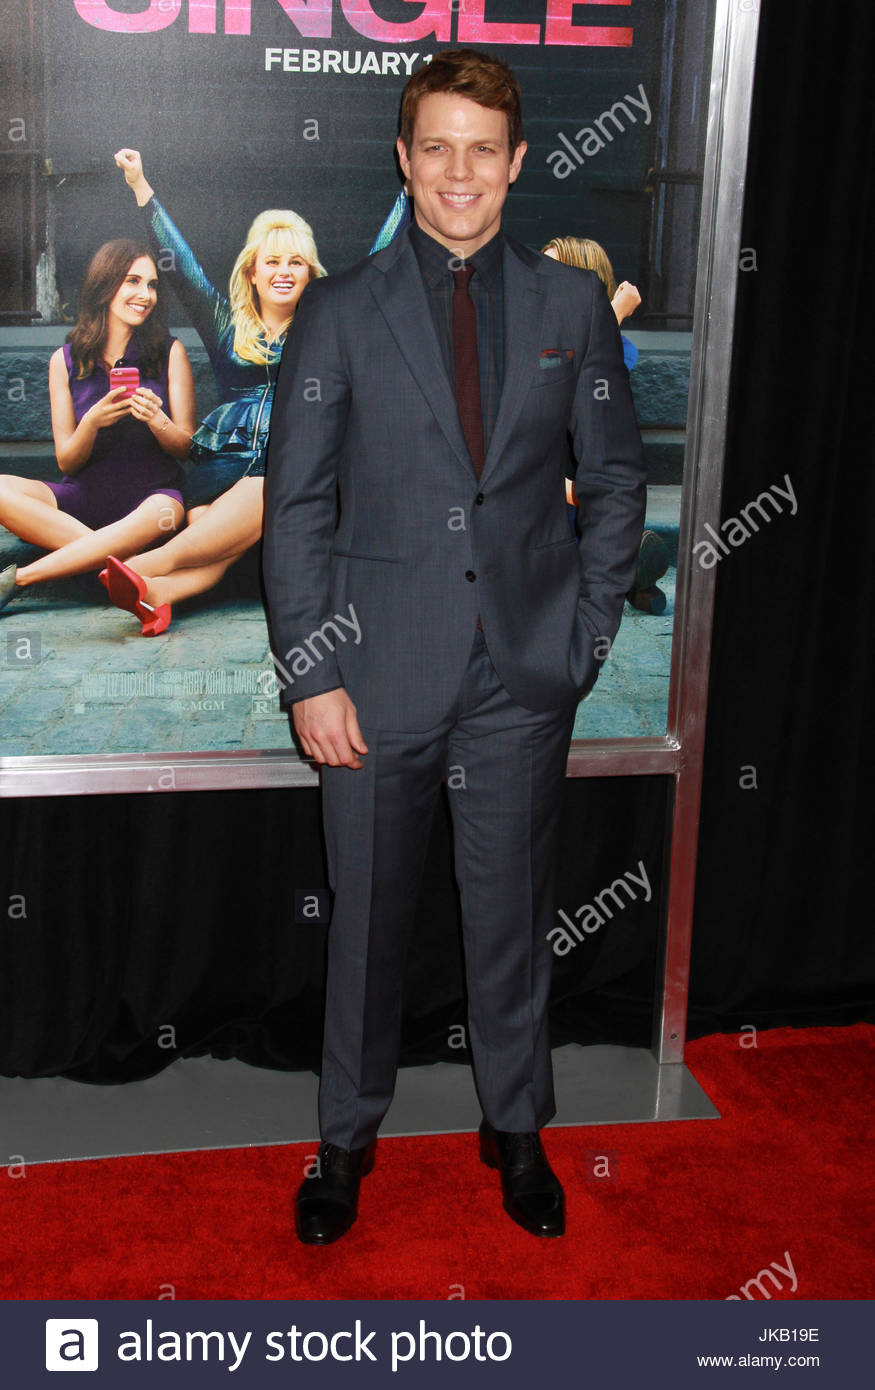 Jake lacy celebrities at the new york premiere of how to be stock jake lacy celebrities at the new york premiere of how to be single ccuart Images